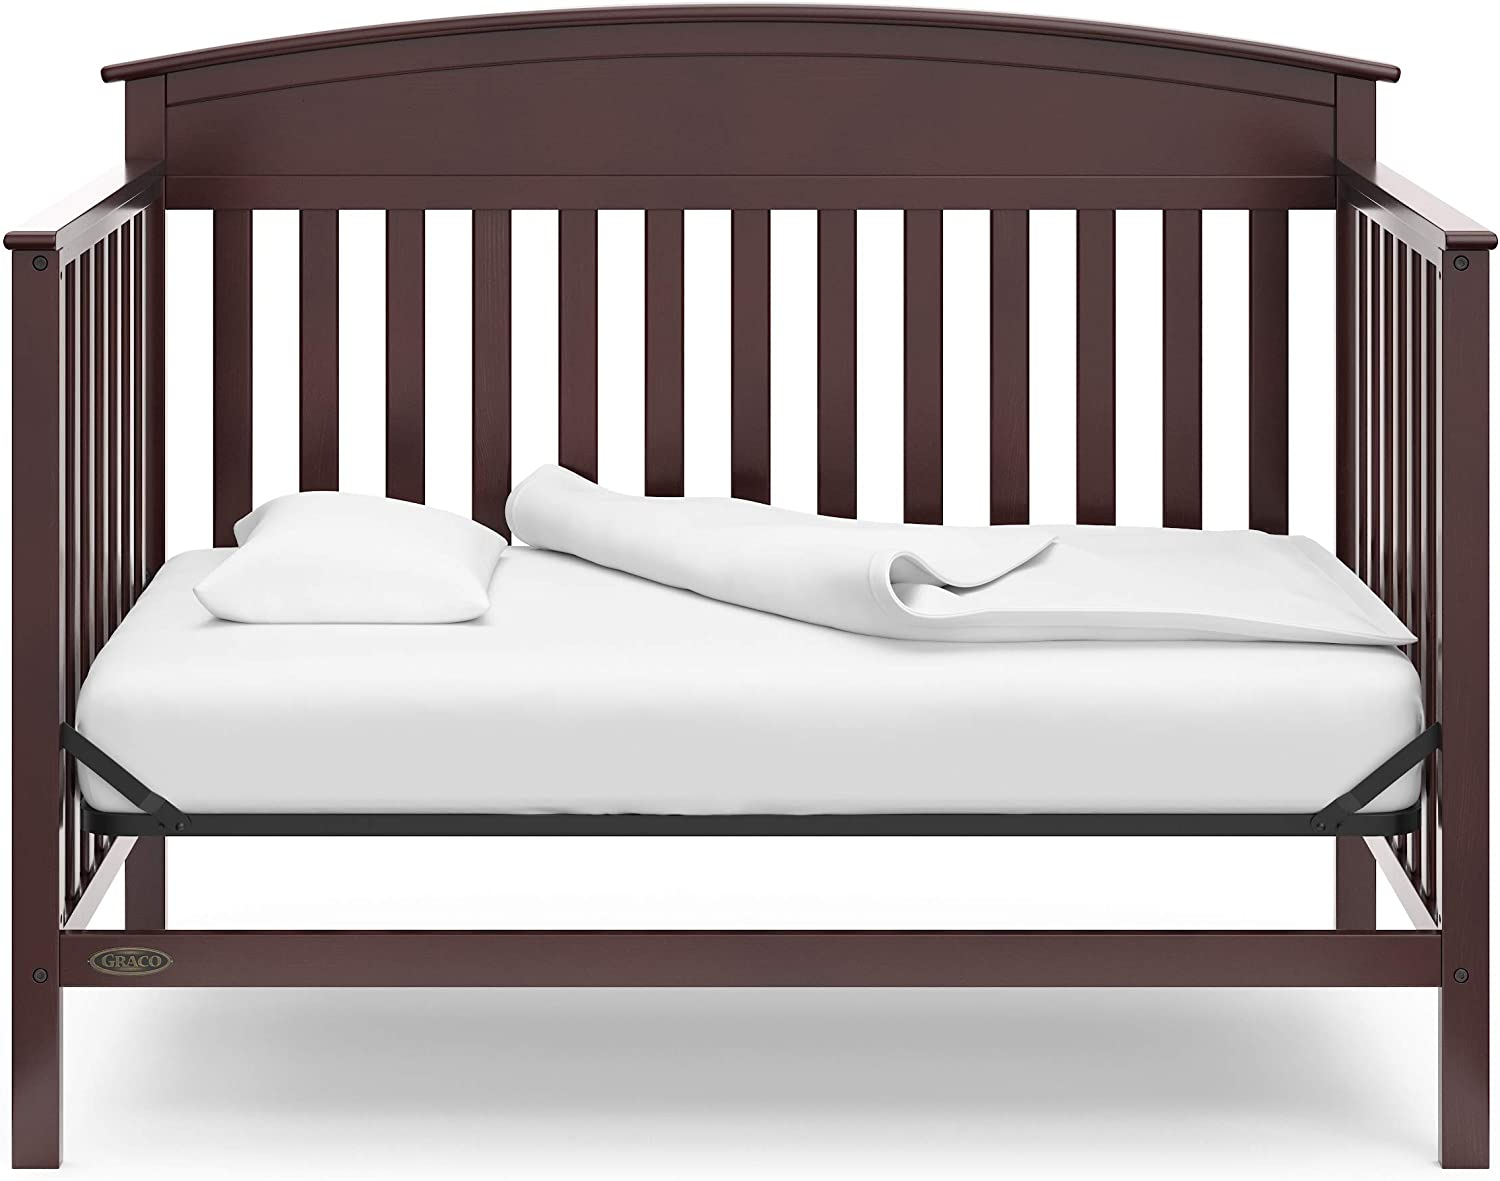 Espresso 3-Position Adjustable Mattress Support Base Graco Benton 4-in-1 Convertible Crib Easily Converts to Toddler Bed Daybed or Full-Size Bed with Headboard